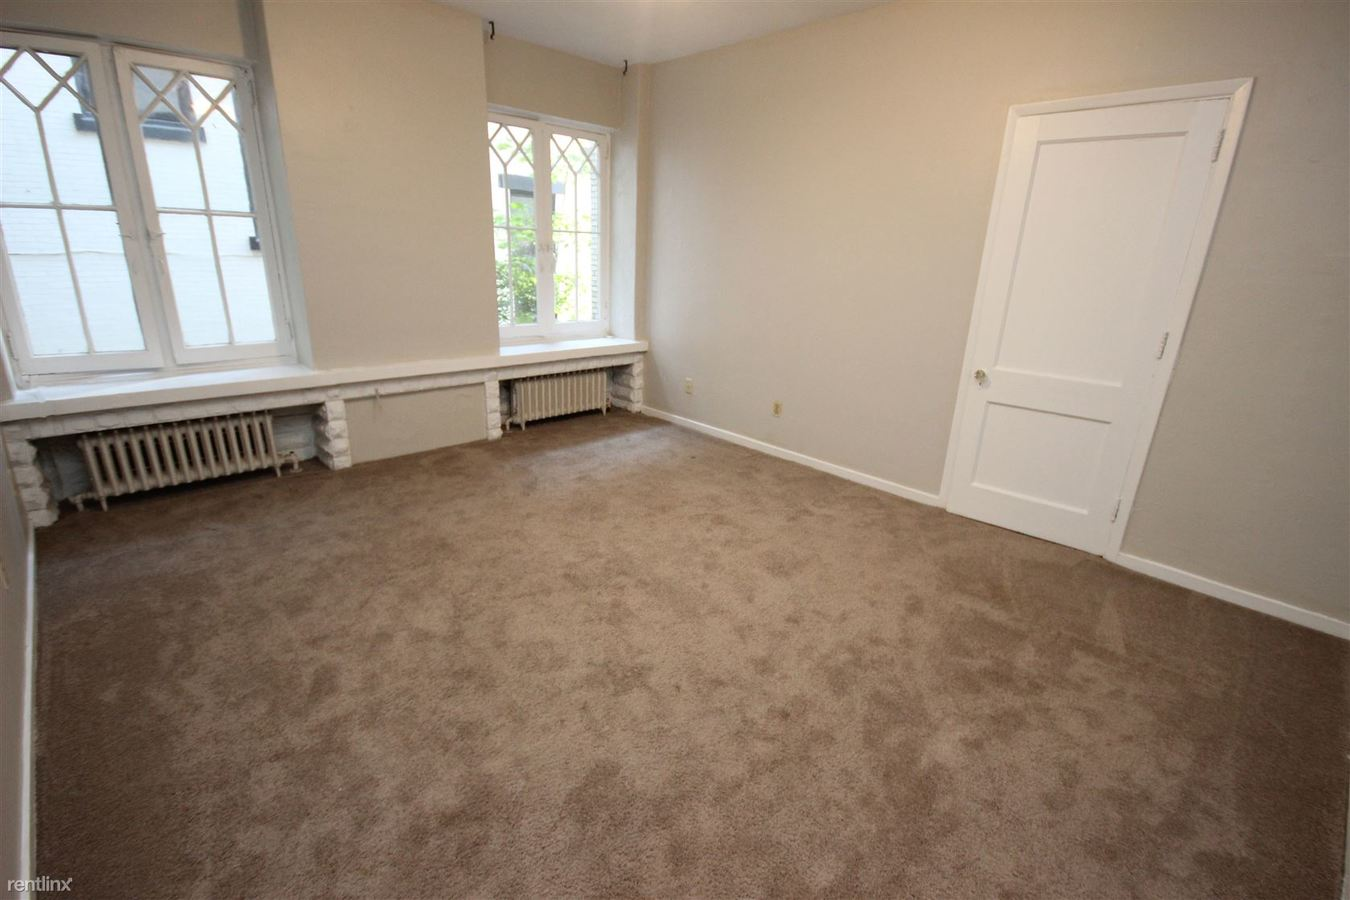 1 Bedroom 1 Bathroom Apartment for rent at Highland Manor in Pittsburgh, PA